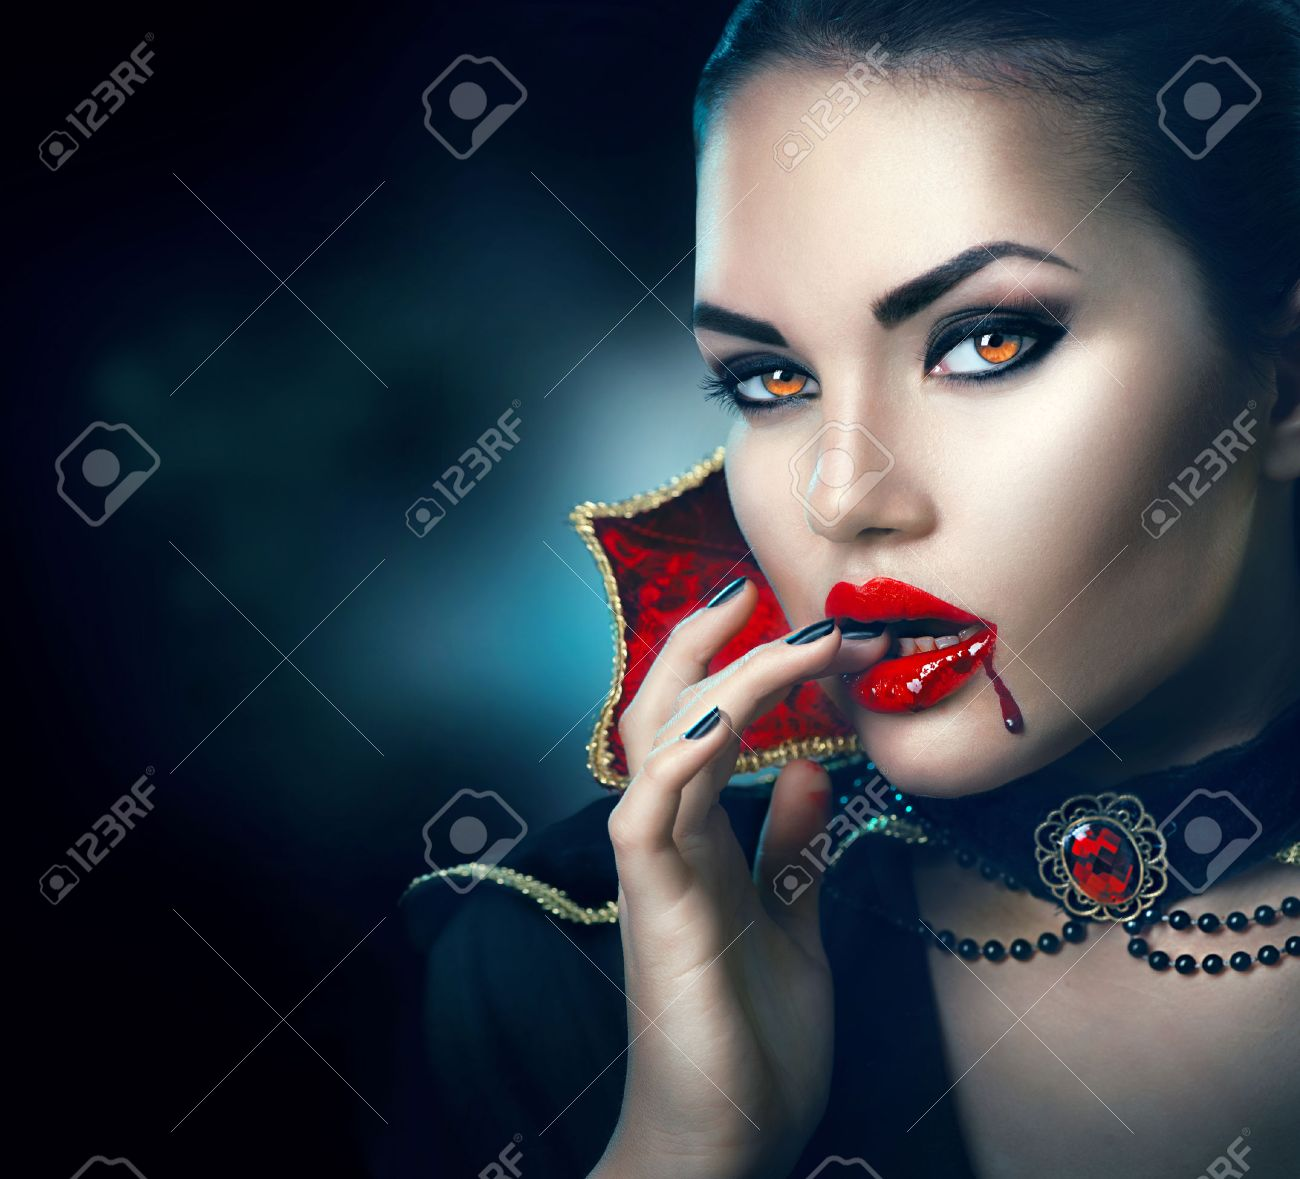 Halloween portrait. Beauty vampire woman with dripping blood on her mouth - 63175211